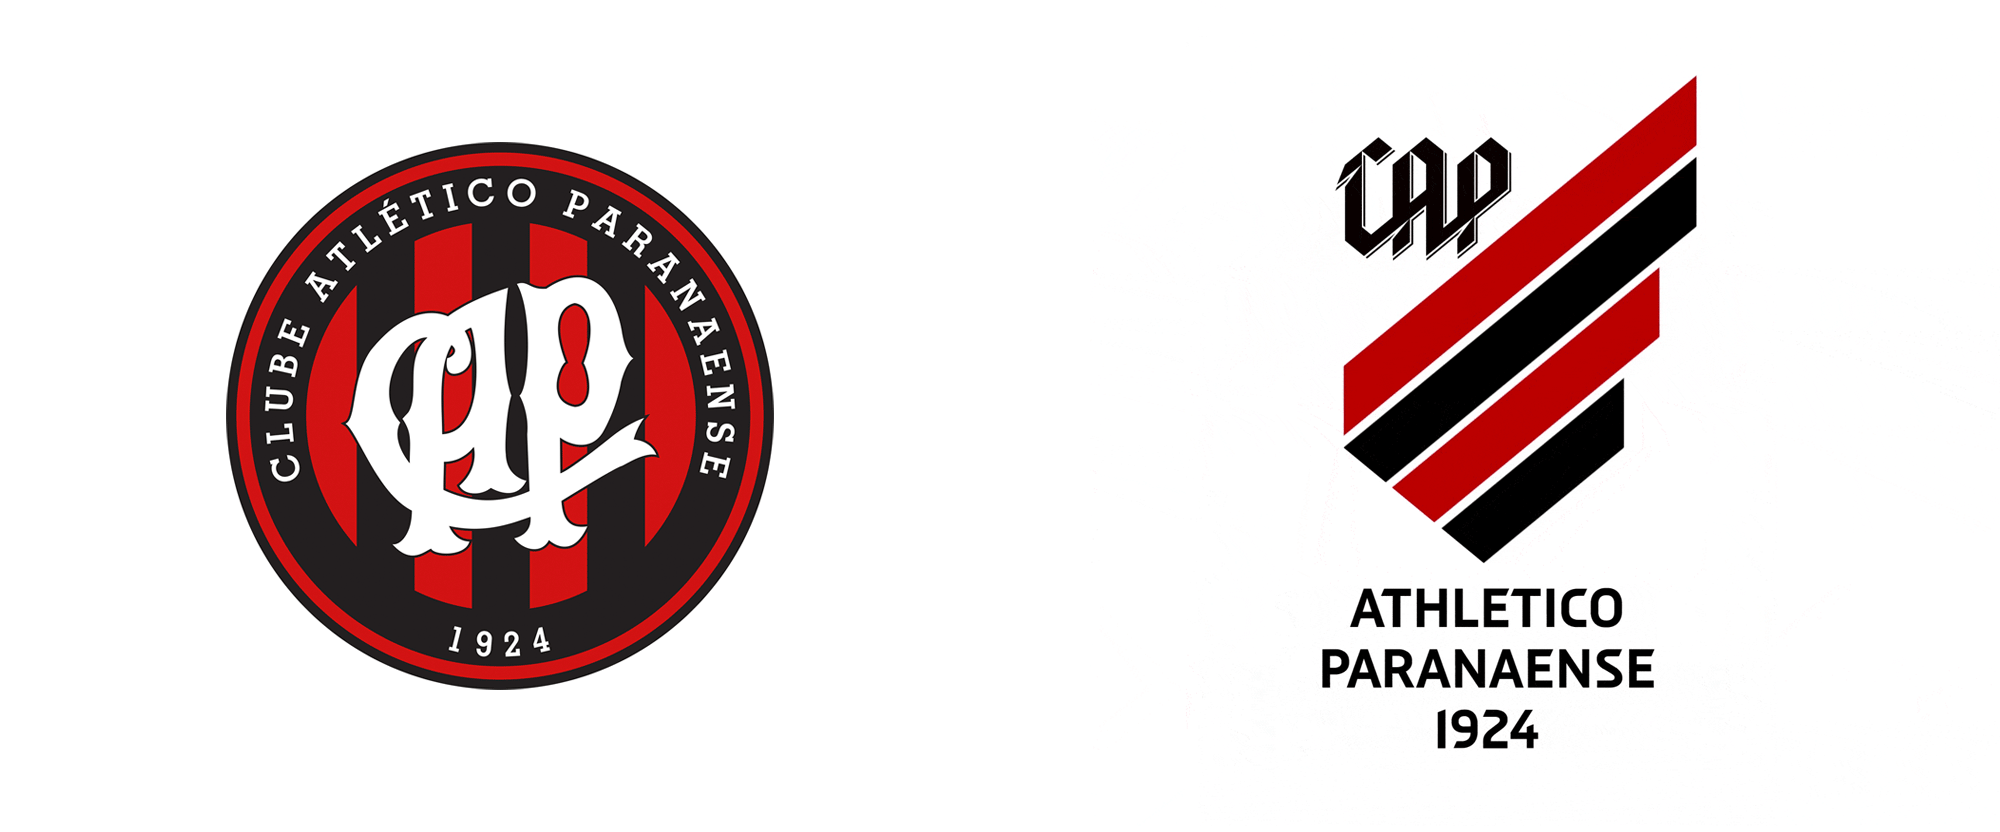 New Logo and Identity for Club Athletico Paranaense by Oz